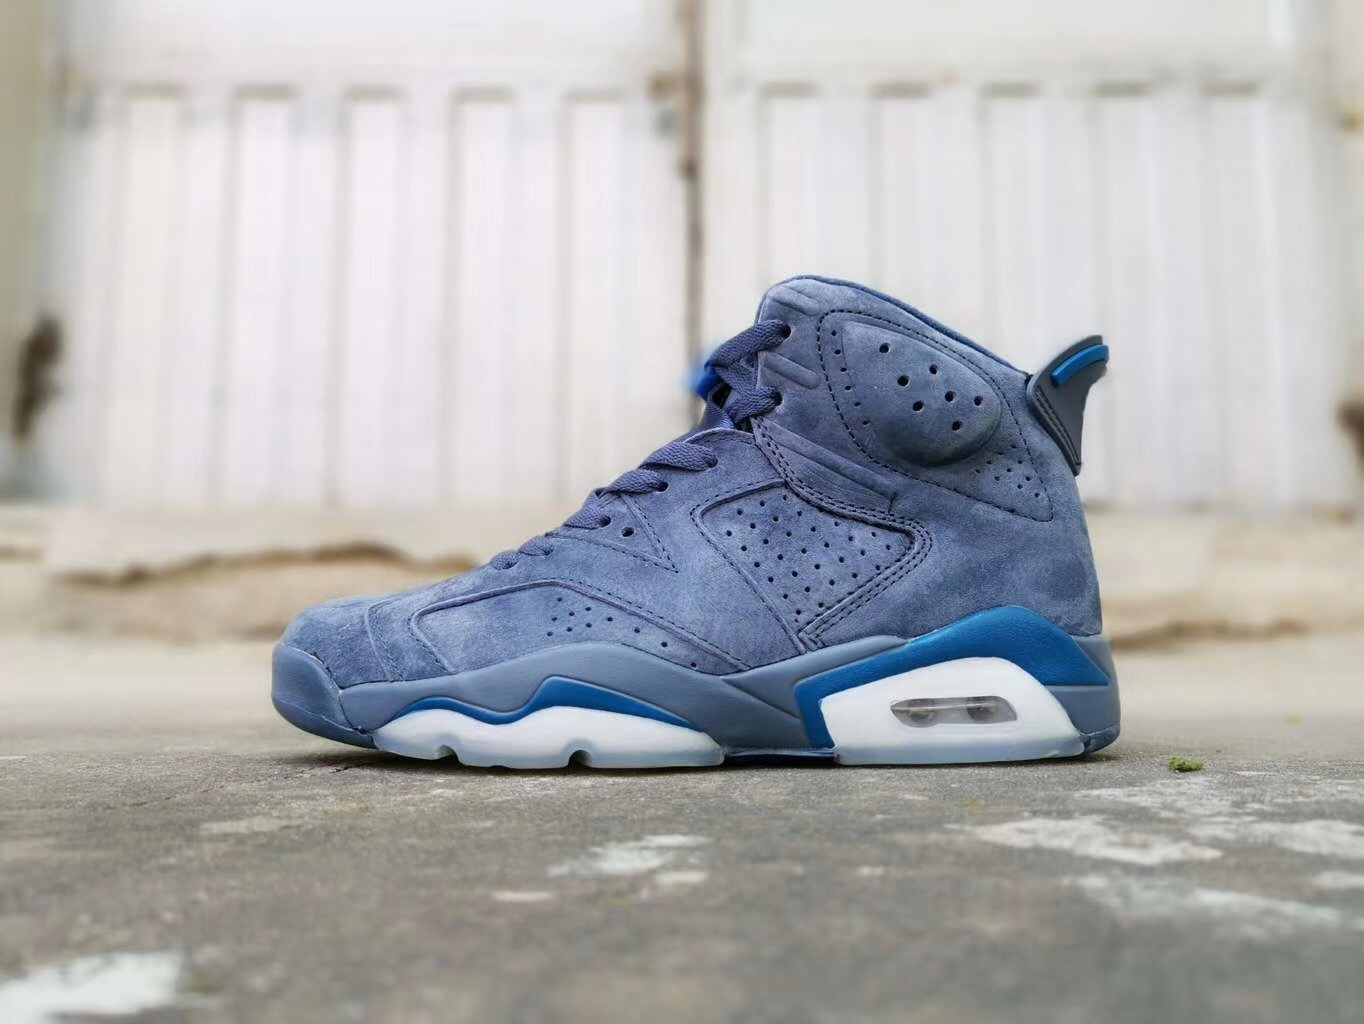 2019 Air Jordan 6 Retro Jimmy Buttler Blue Jade Shoes